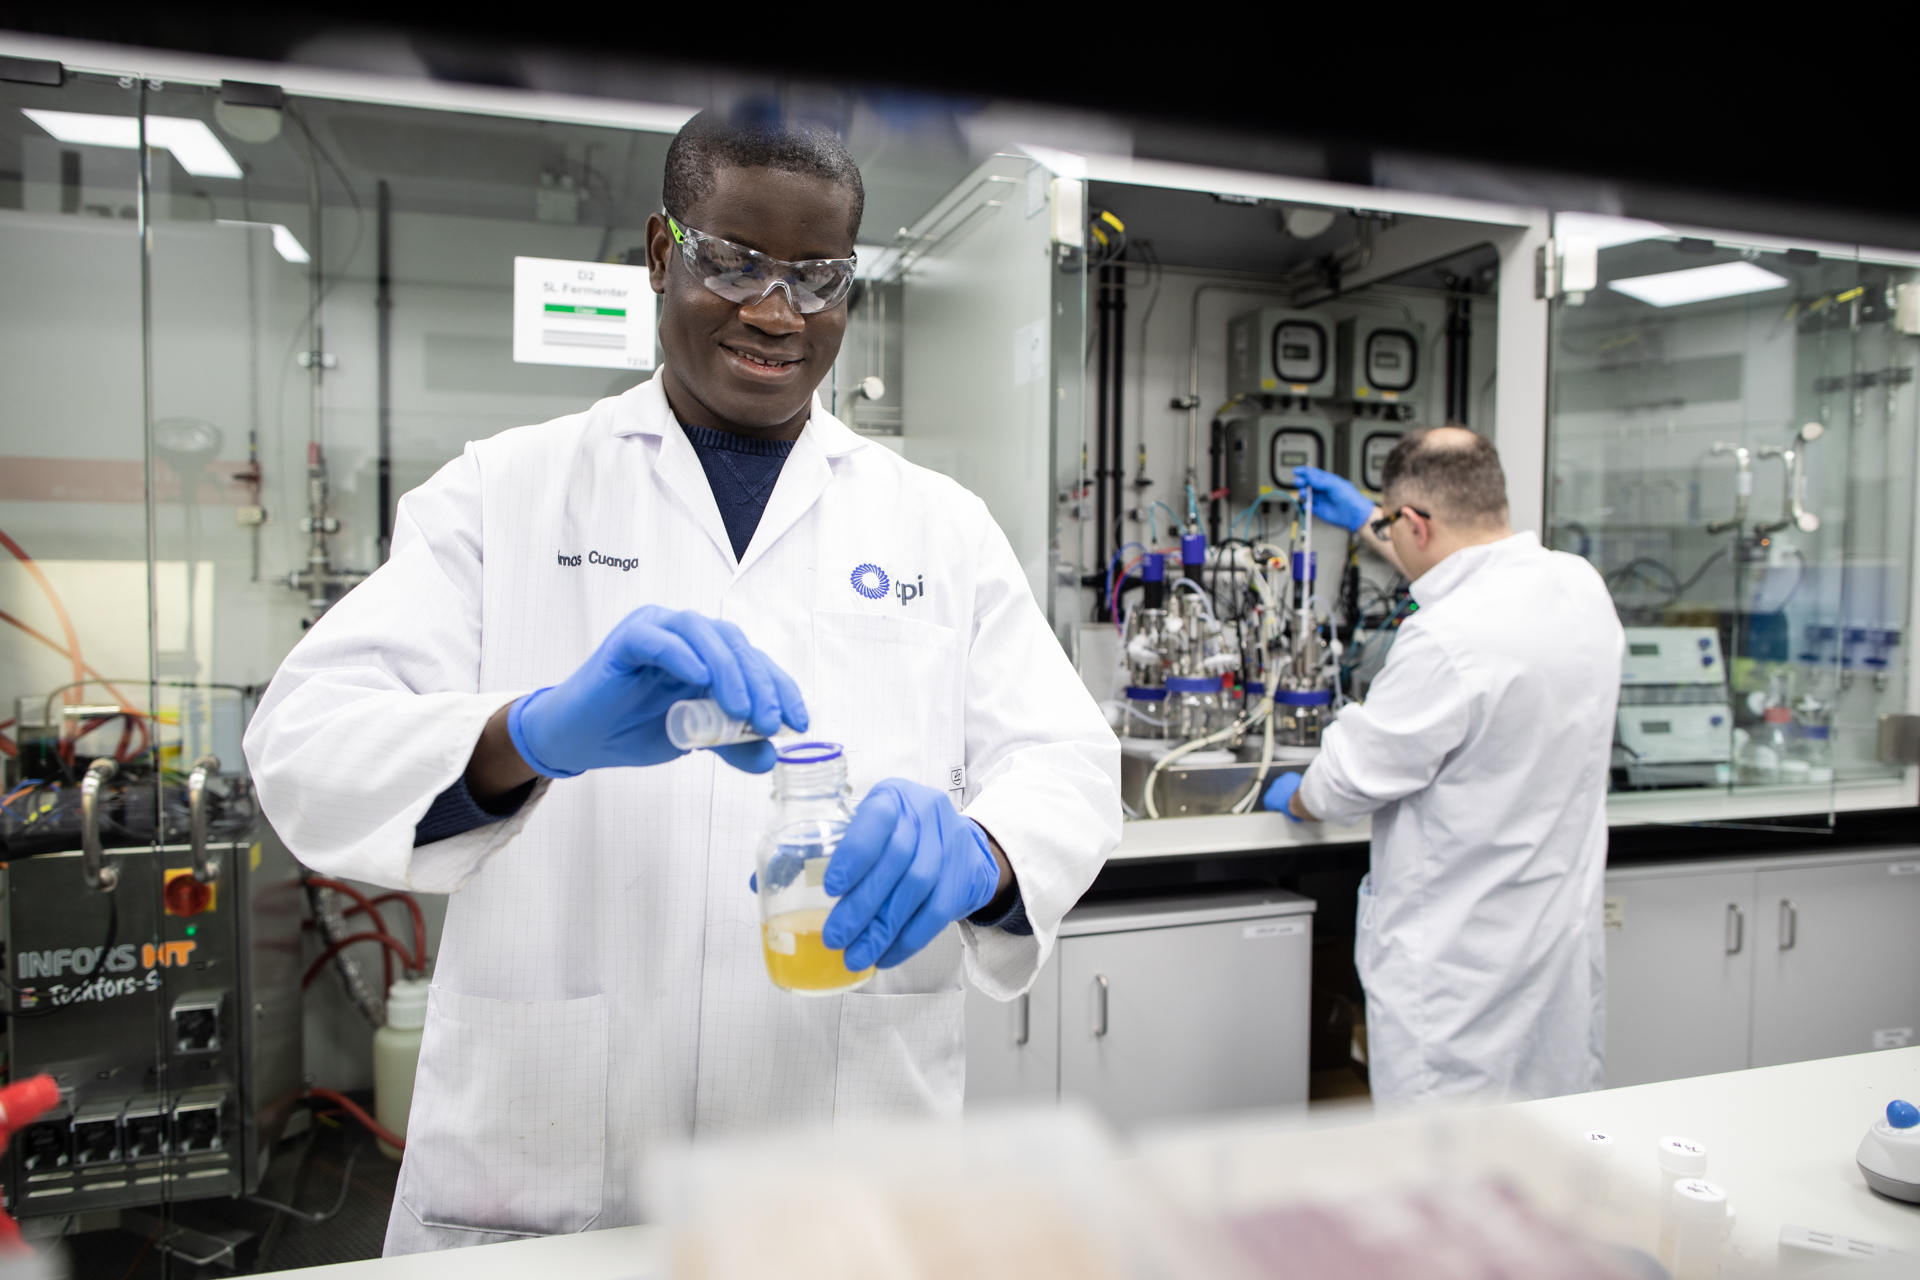 CPI team members work to develop next-generation sustainable aviation fuel